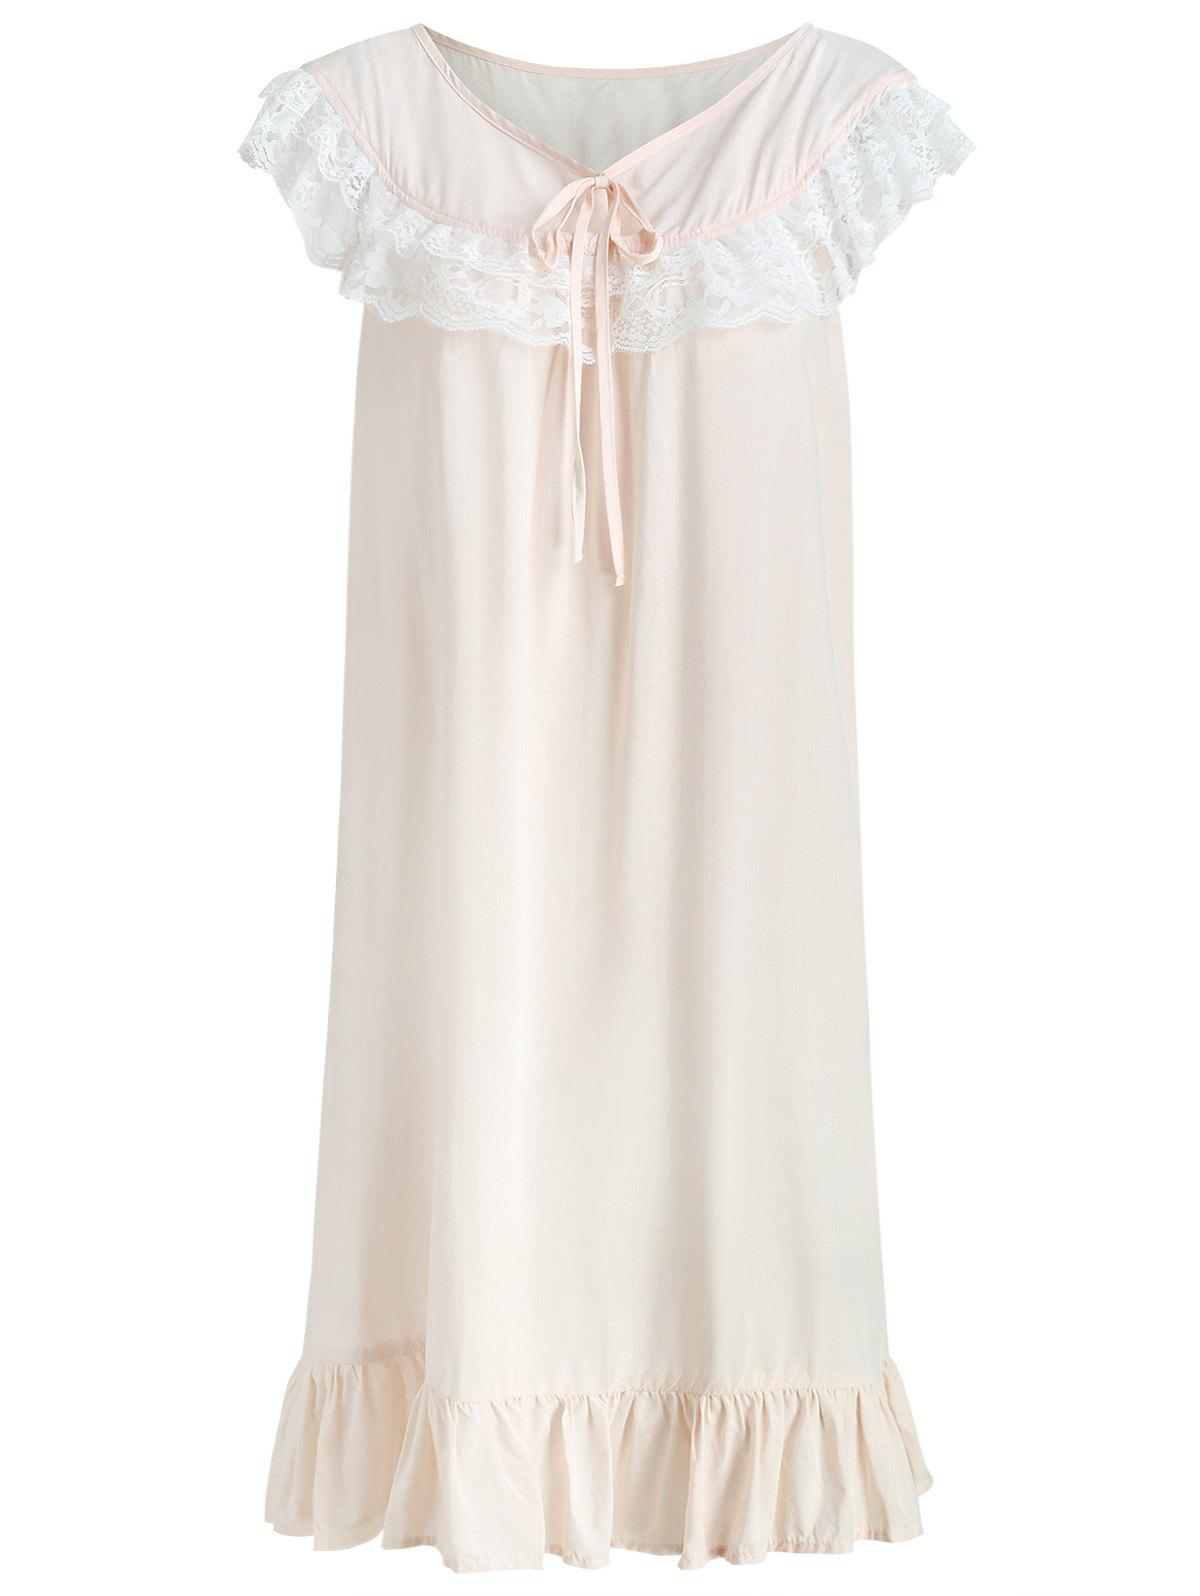 Shop Bowknot Flounce Lace Panel Sleeping Dress